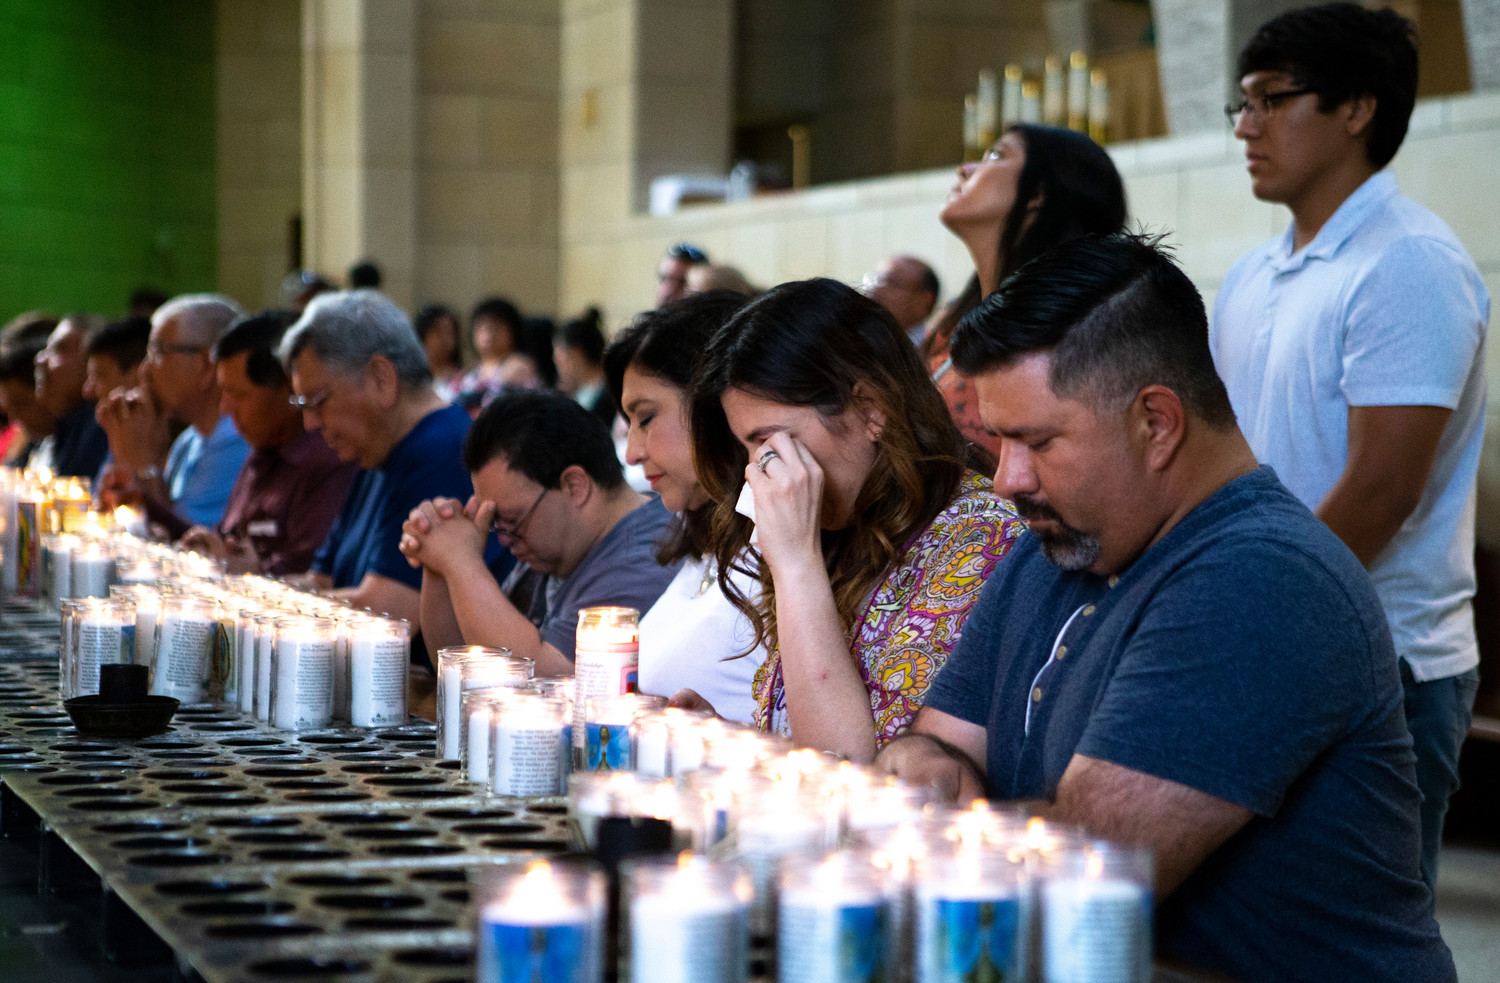 Worshipers pray before a July 1 Mass at the Basilica of Our Lady of San Juan del Valle in San Juan, Texas. A delegation of U.S. bishops concelebrated the Mass at the beginning of their fact-finding mission about Central American immigrant detention at the U.S.-Mexican border.